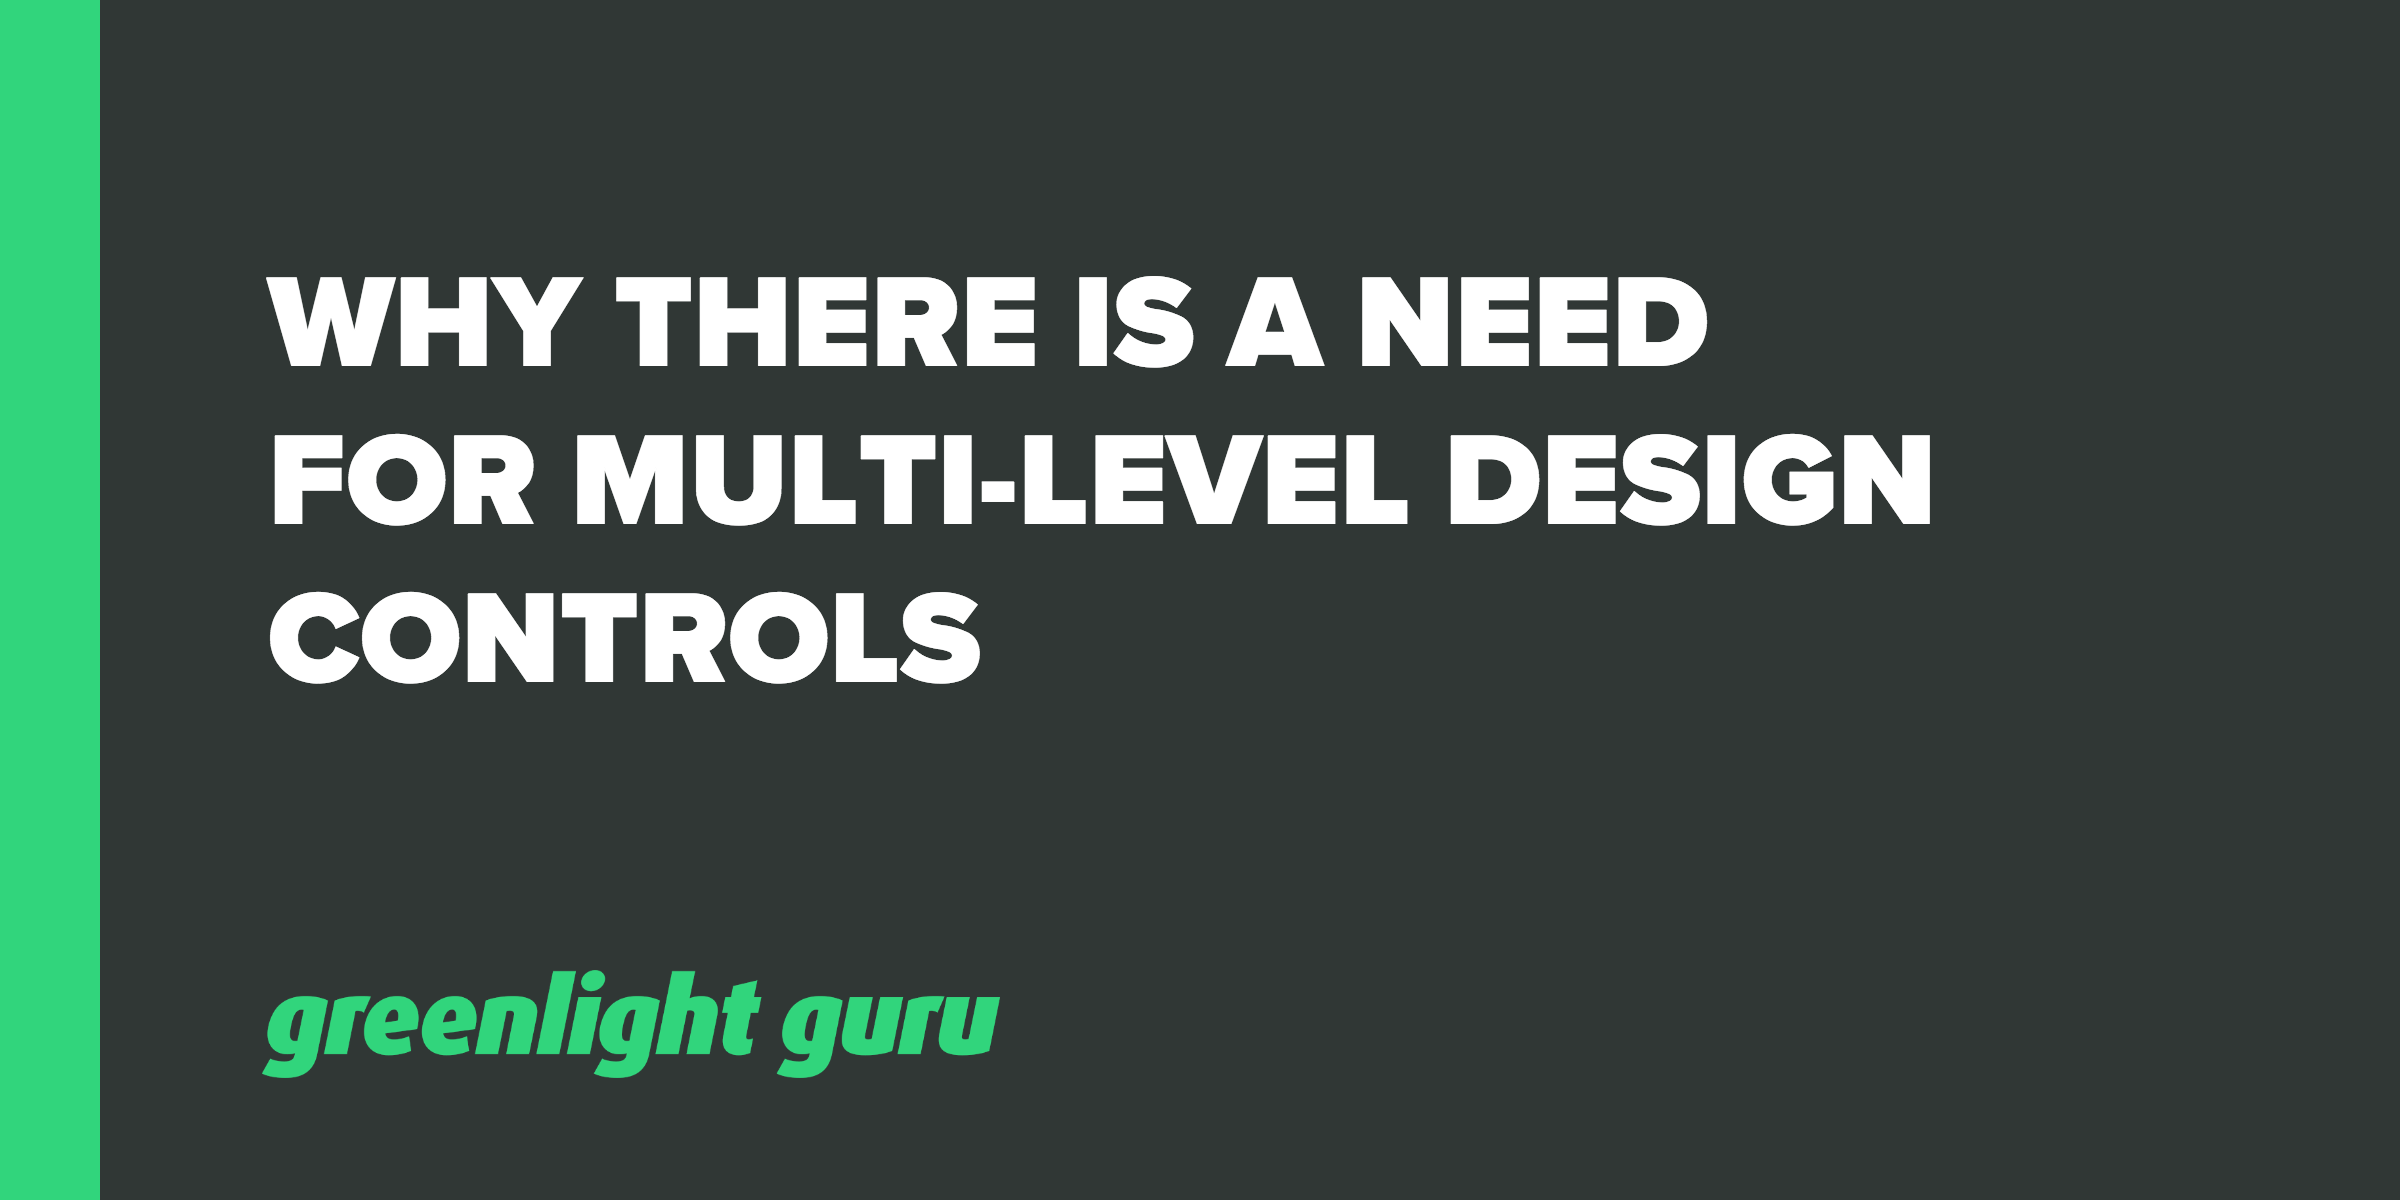 FEATURED-IMAGE_Why There is a Need for Multi-Level Design Controls